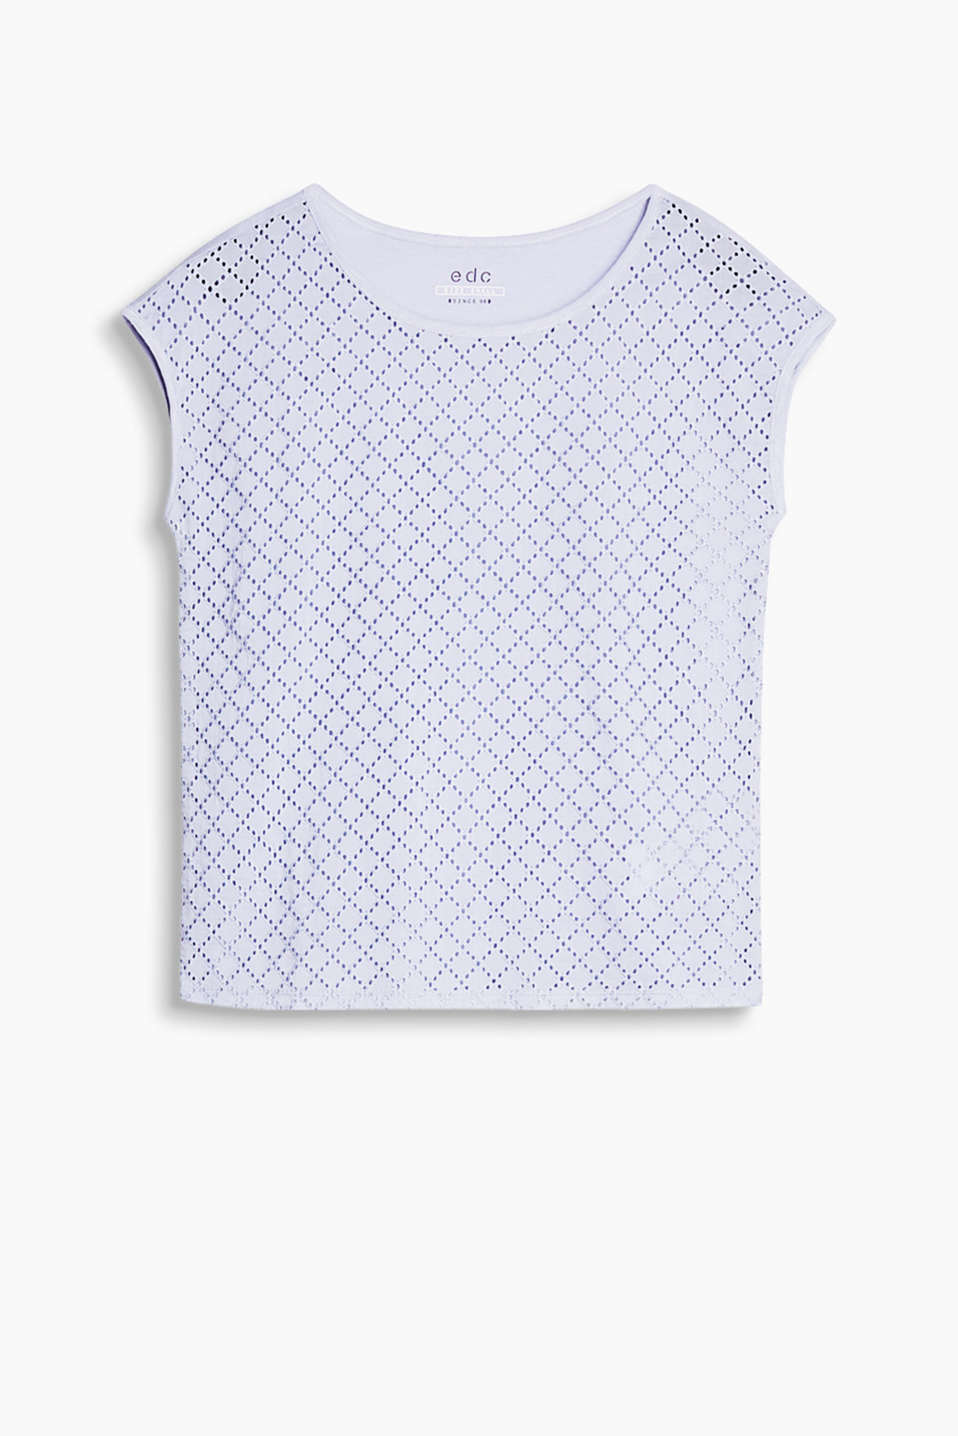 A front in broderie anglaise gives this top its casual, feminine look